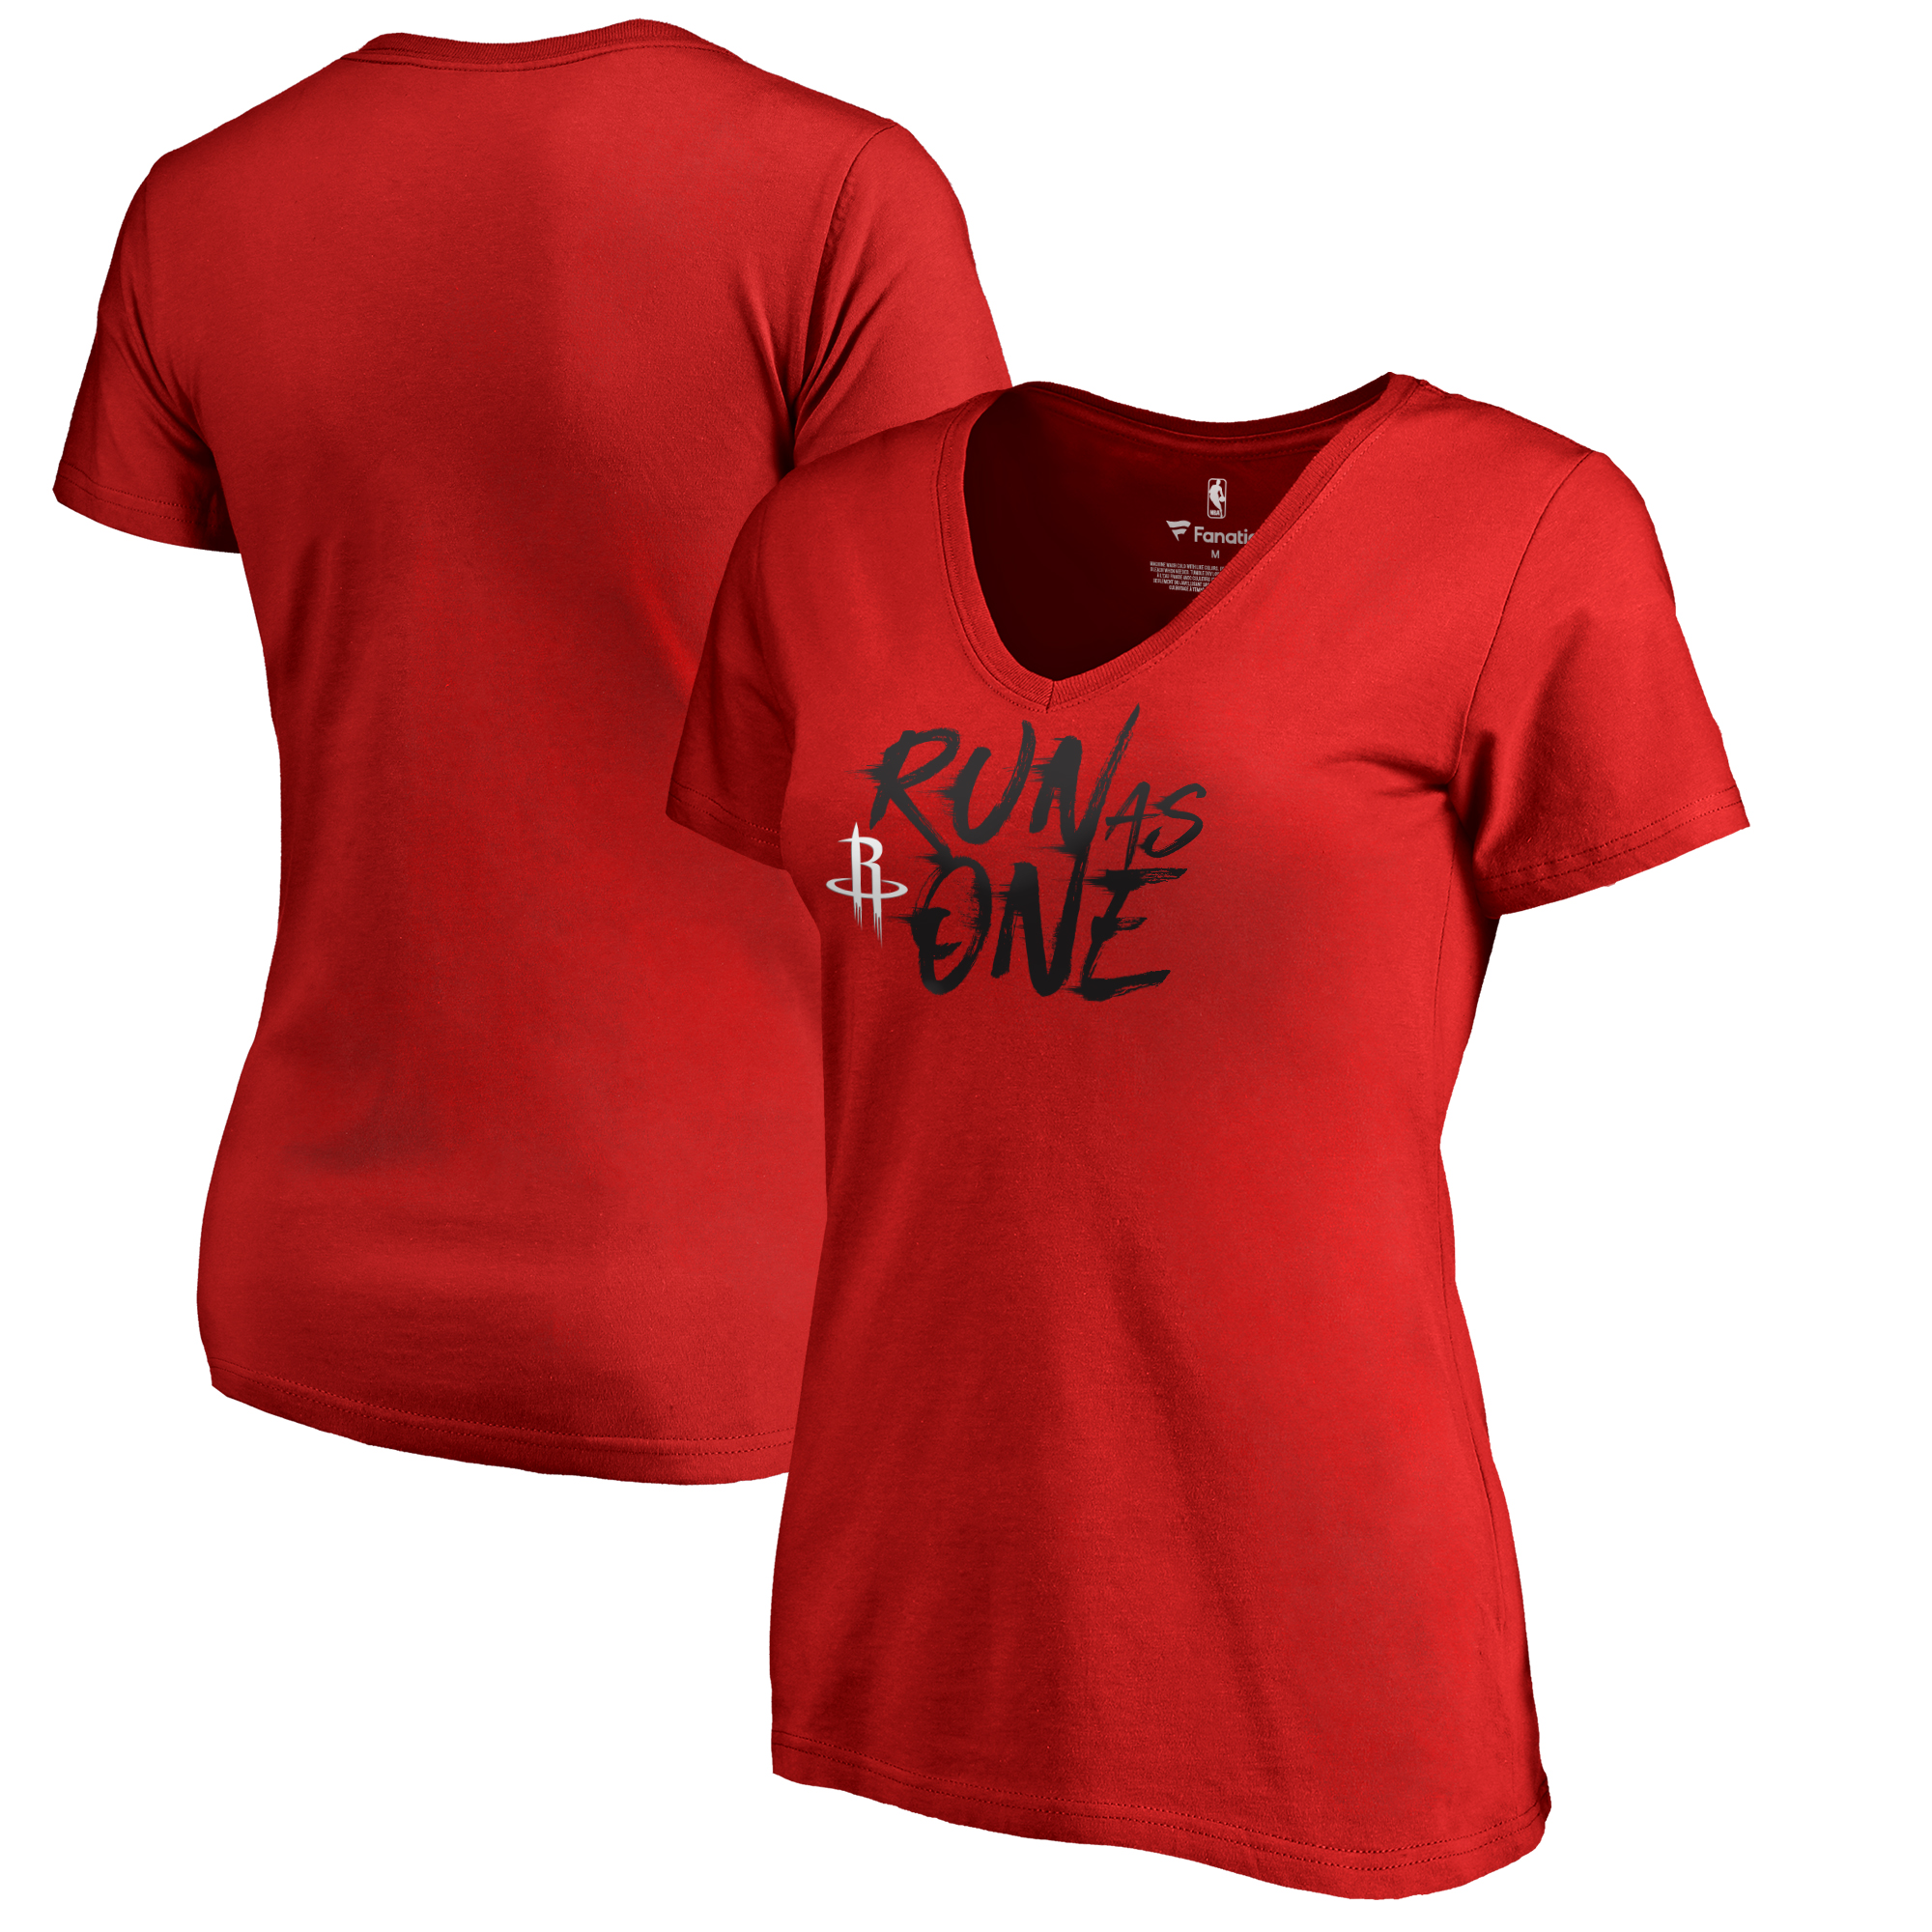 Houston Rockets Fanatics Branded Women's Hometown Collection Run as One T-Shirt - Red